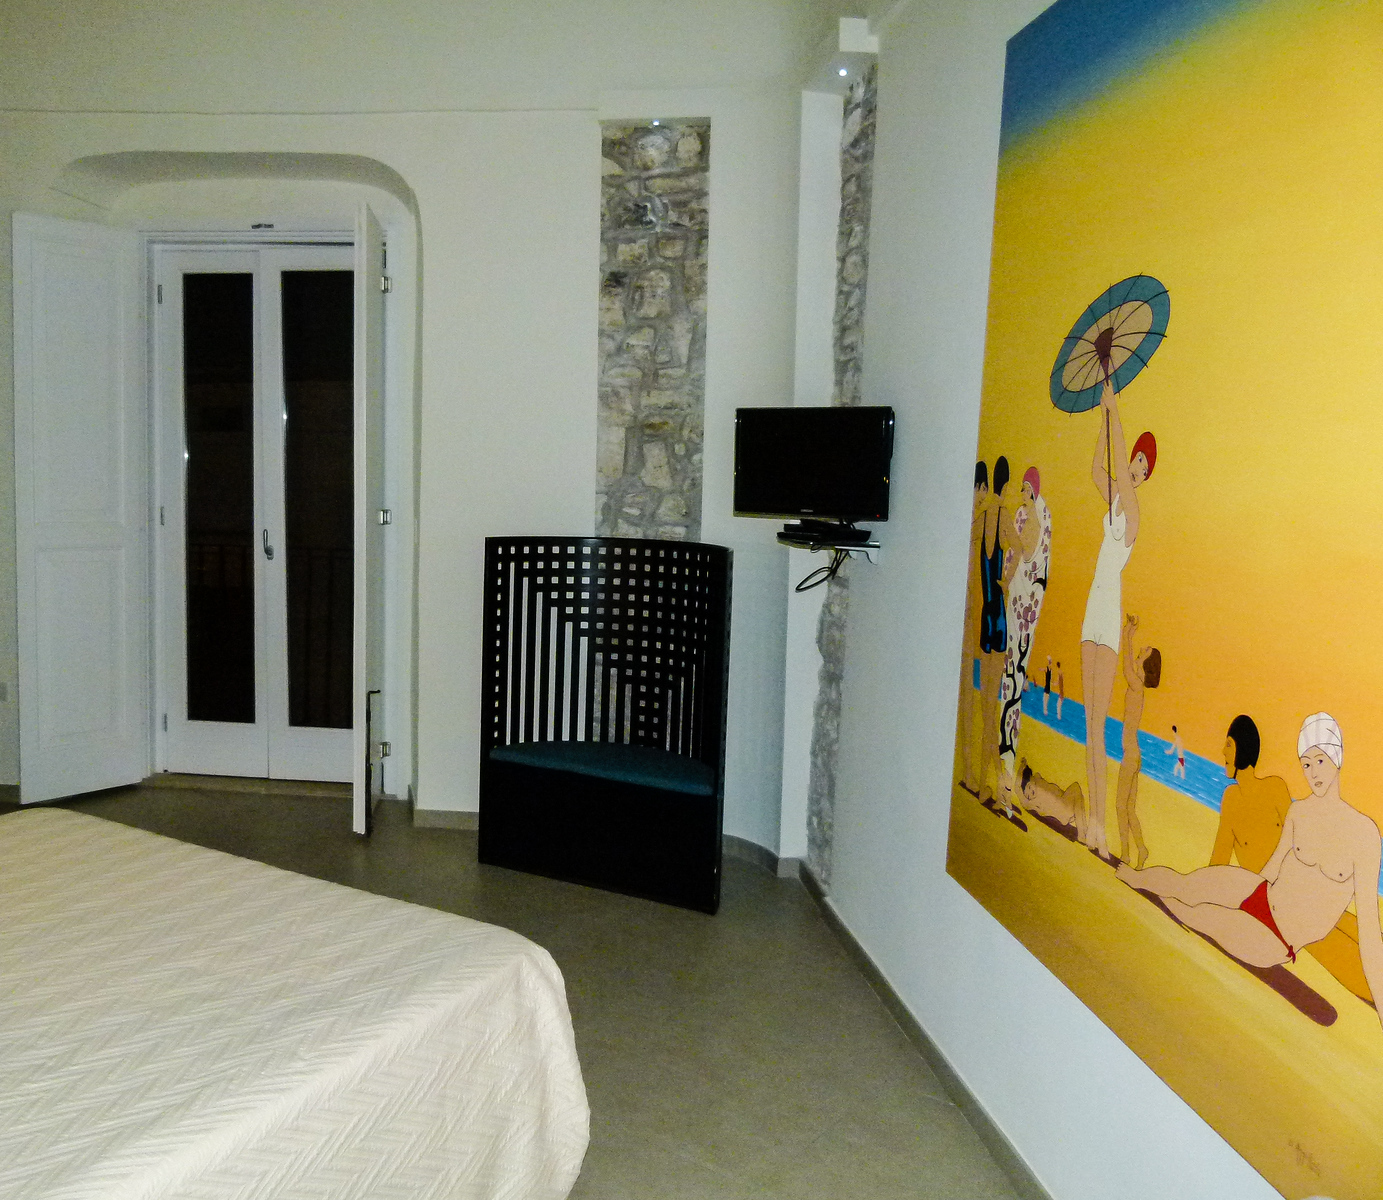 Boomer travel - Italy - Hotel Edifico 15 House Elite in Rodi Garganico is one of our favorite places to stay in Italy. Read about the rest then plan your boomer trip to Italy.